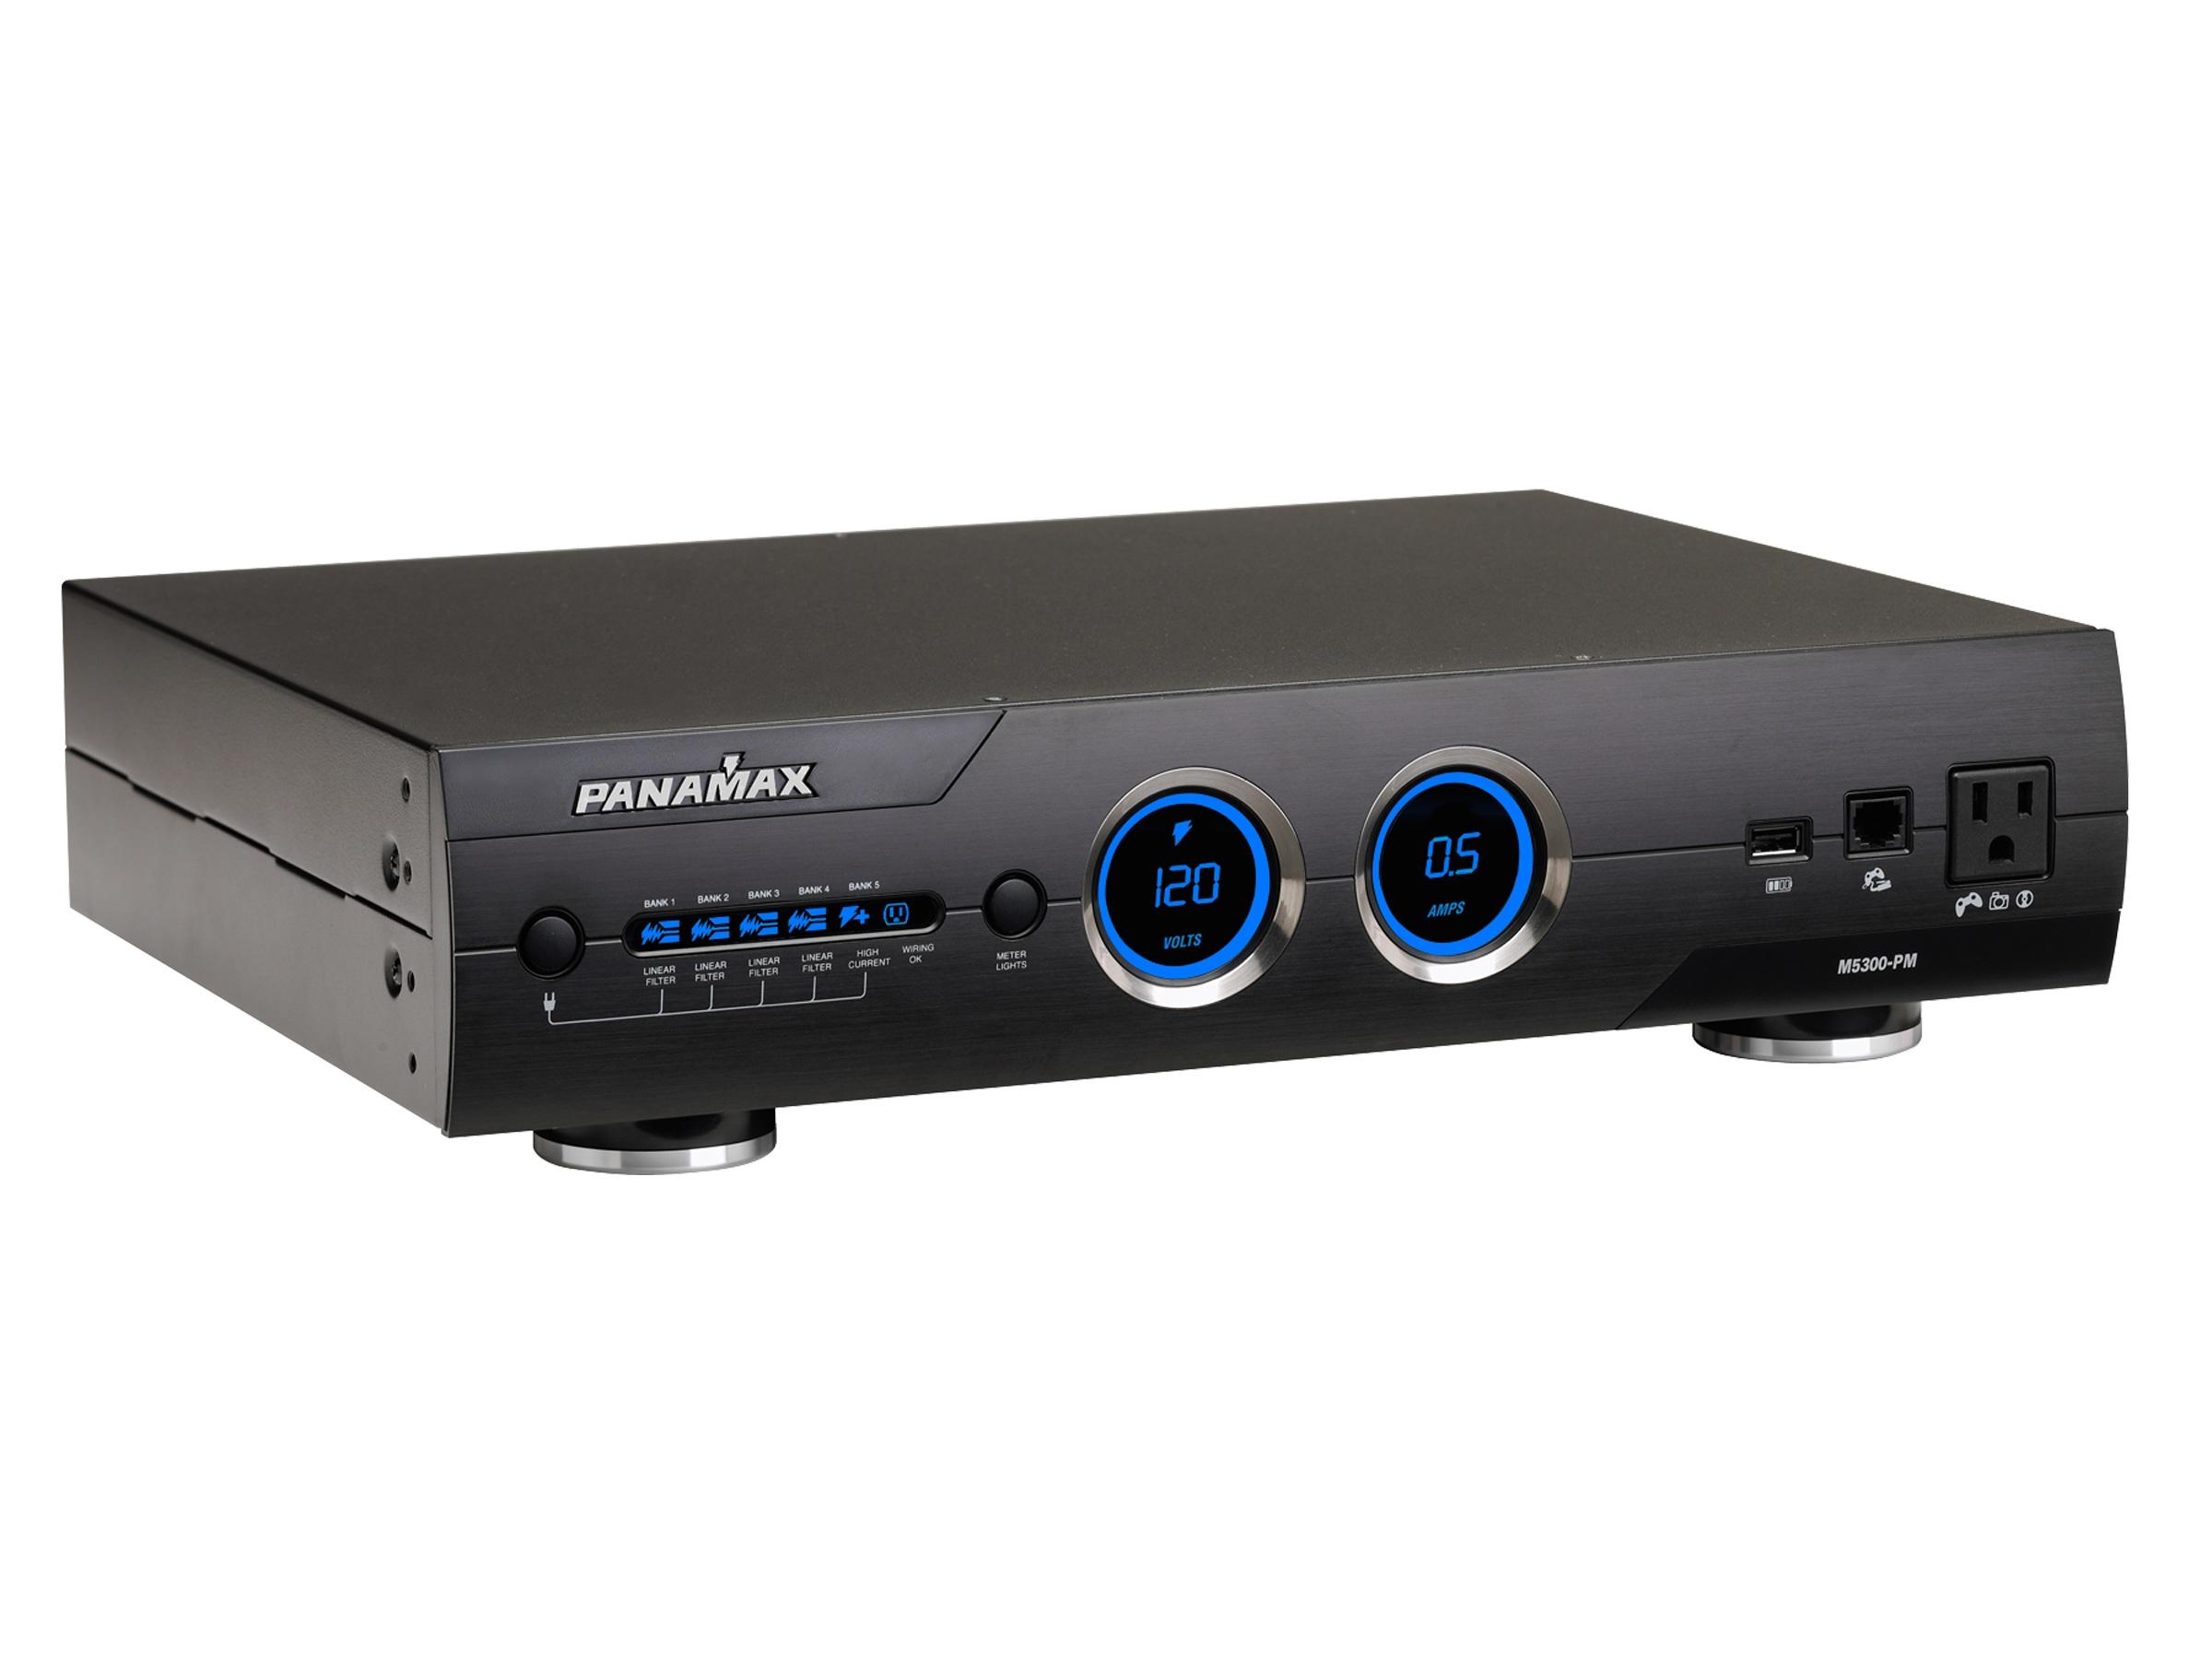 M5300-PM Max 5300 Power Conditioners/2RU/11 Outlets by Panamax